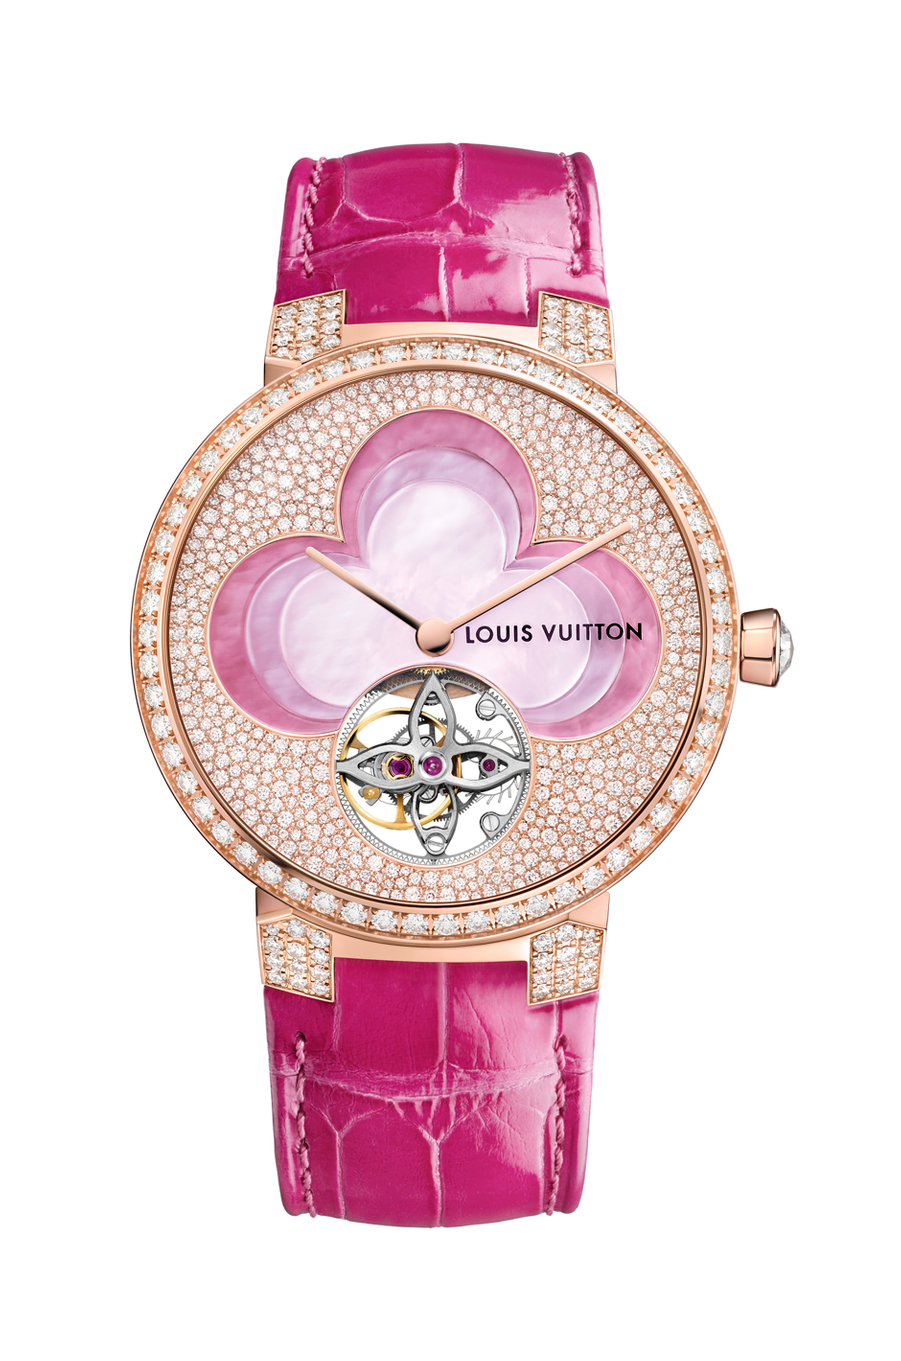 Tambour Monogram Blossom en or rose, diamants et nacre, mouvement automatique avec tourbillon, bracelet en alligator. Louis Vuitton. 105 000 €.